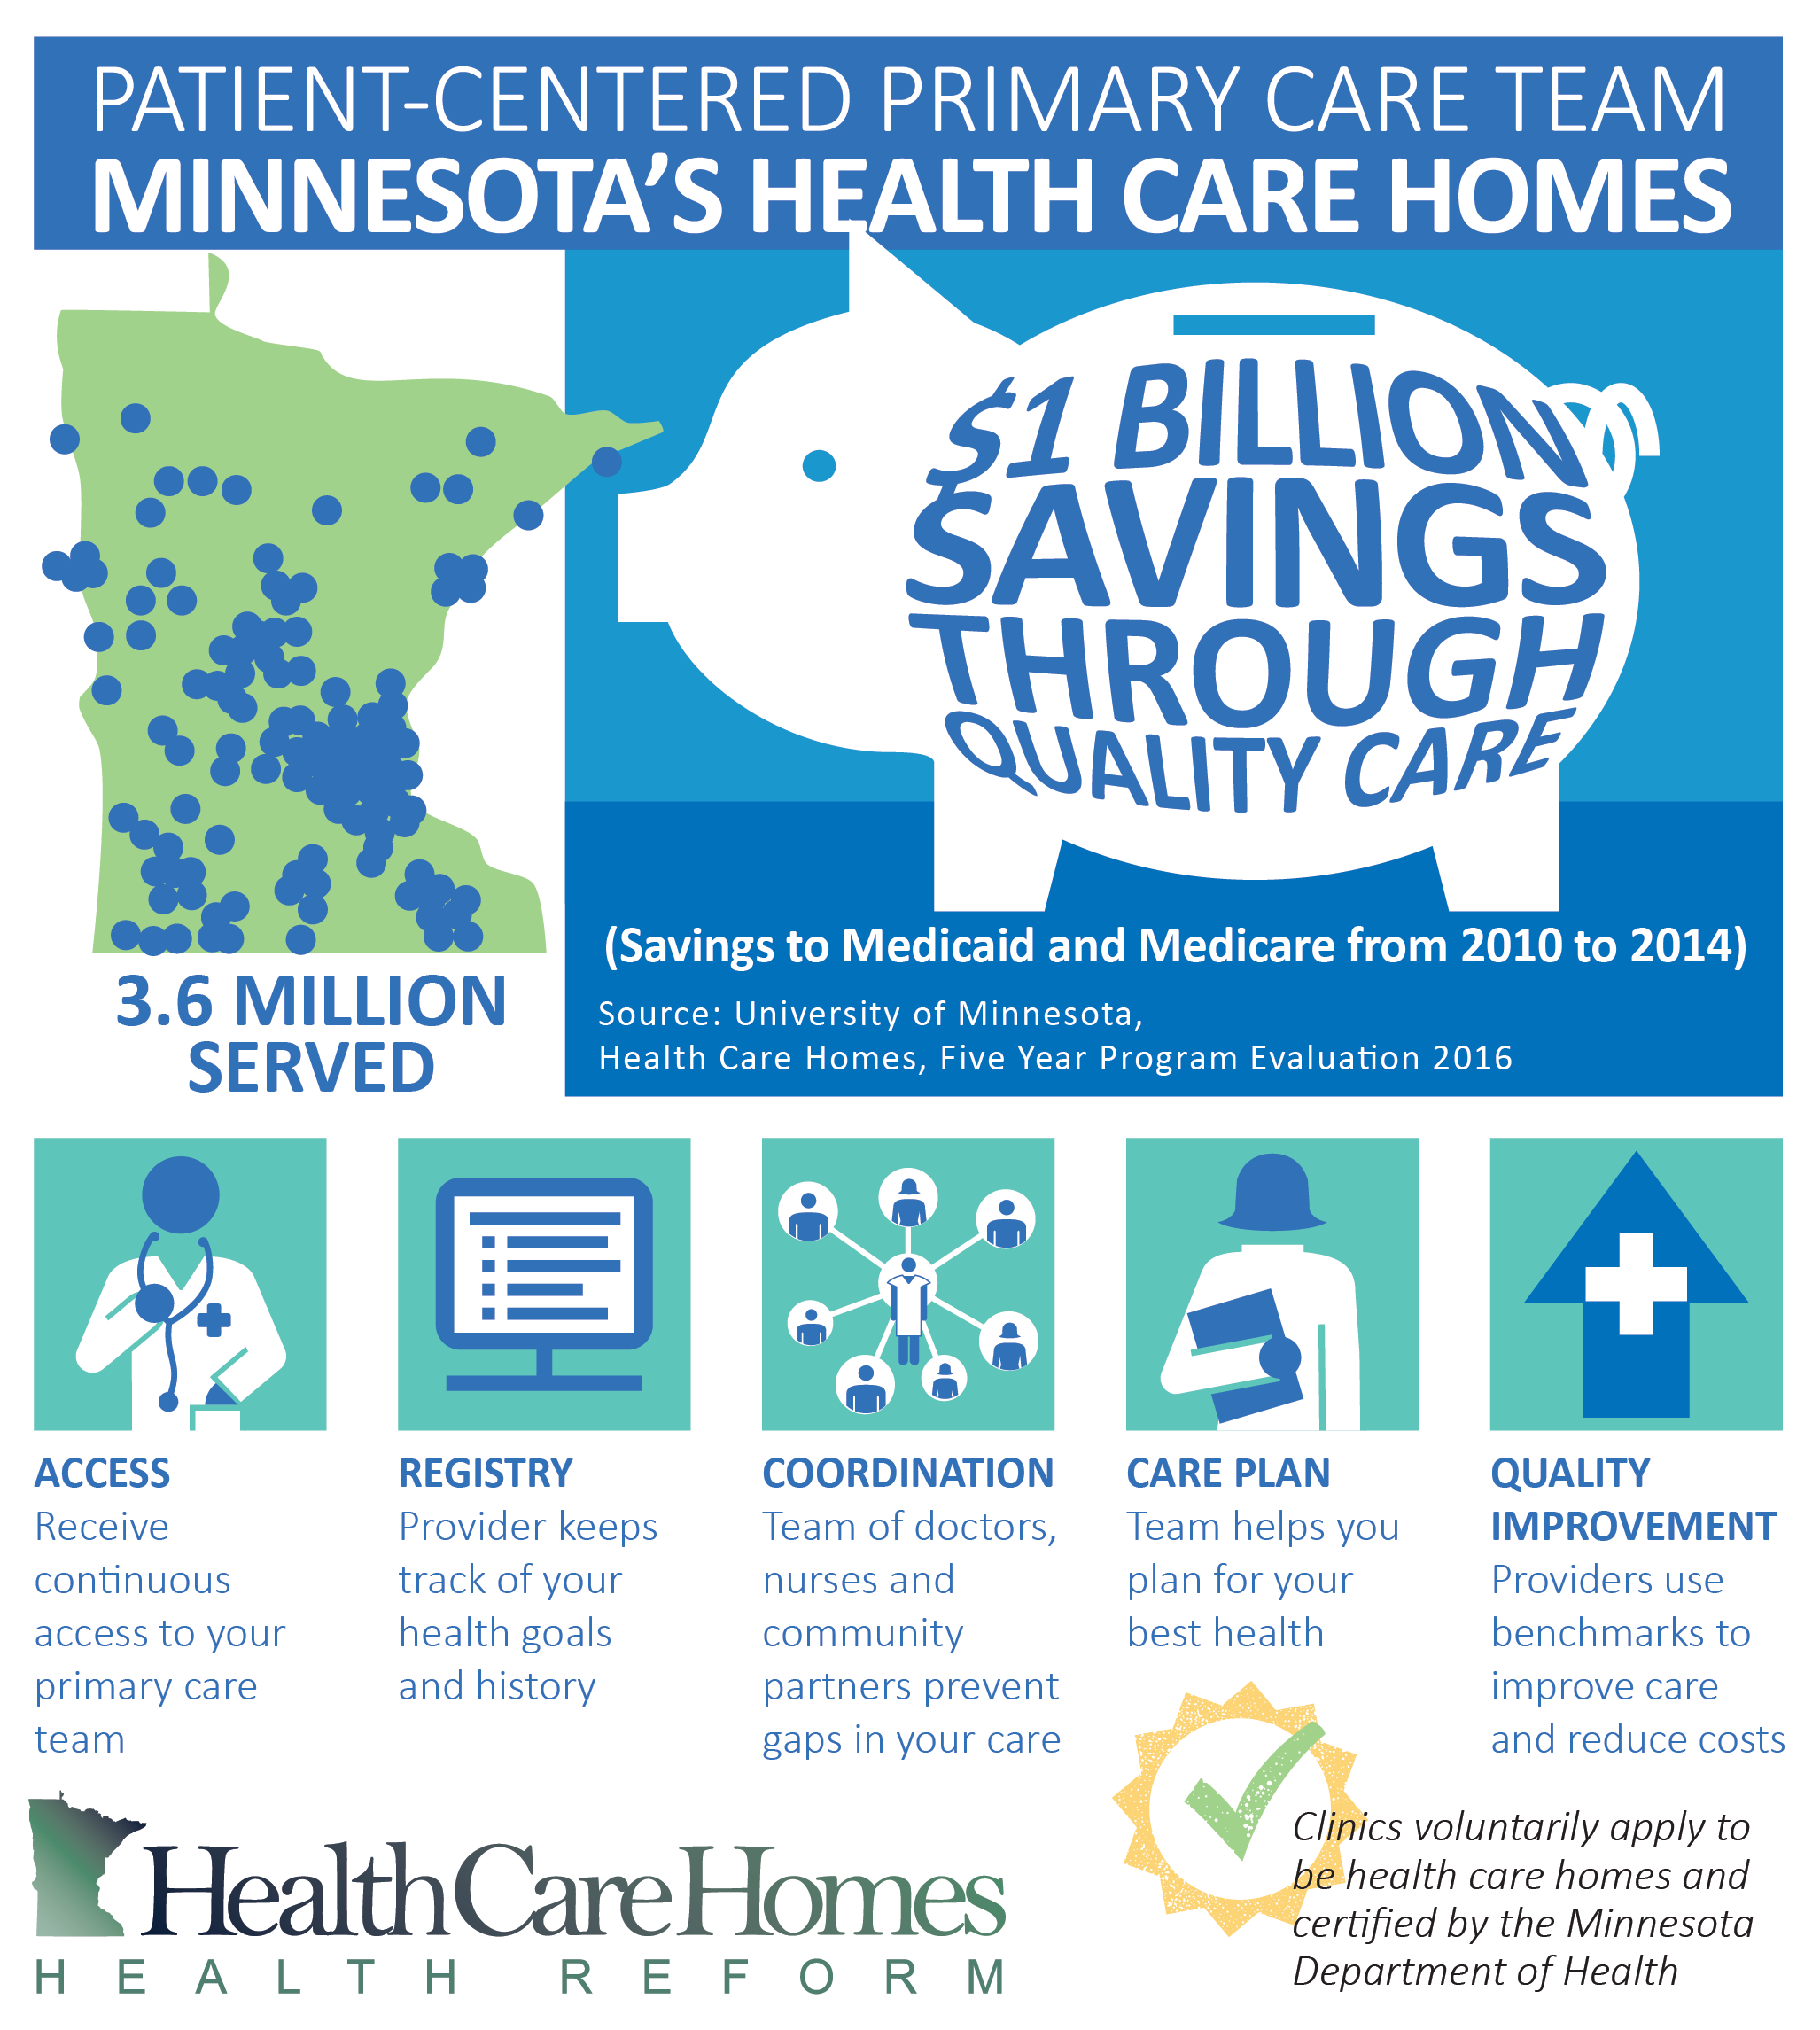 Infographic says: Patient-centered Primary Care Team: Minnesota's Health Care Homes.